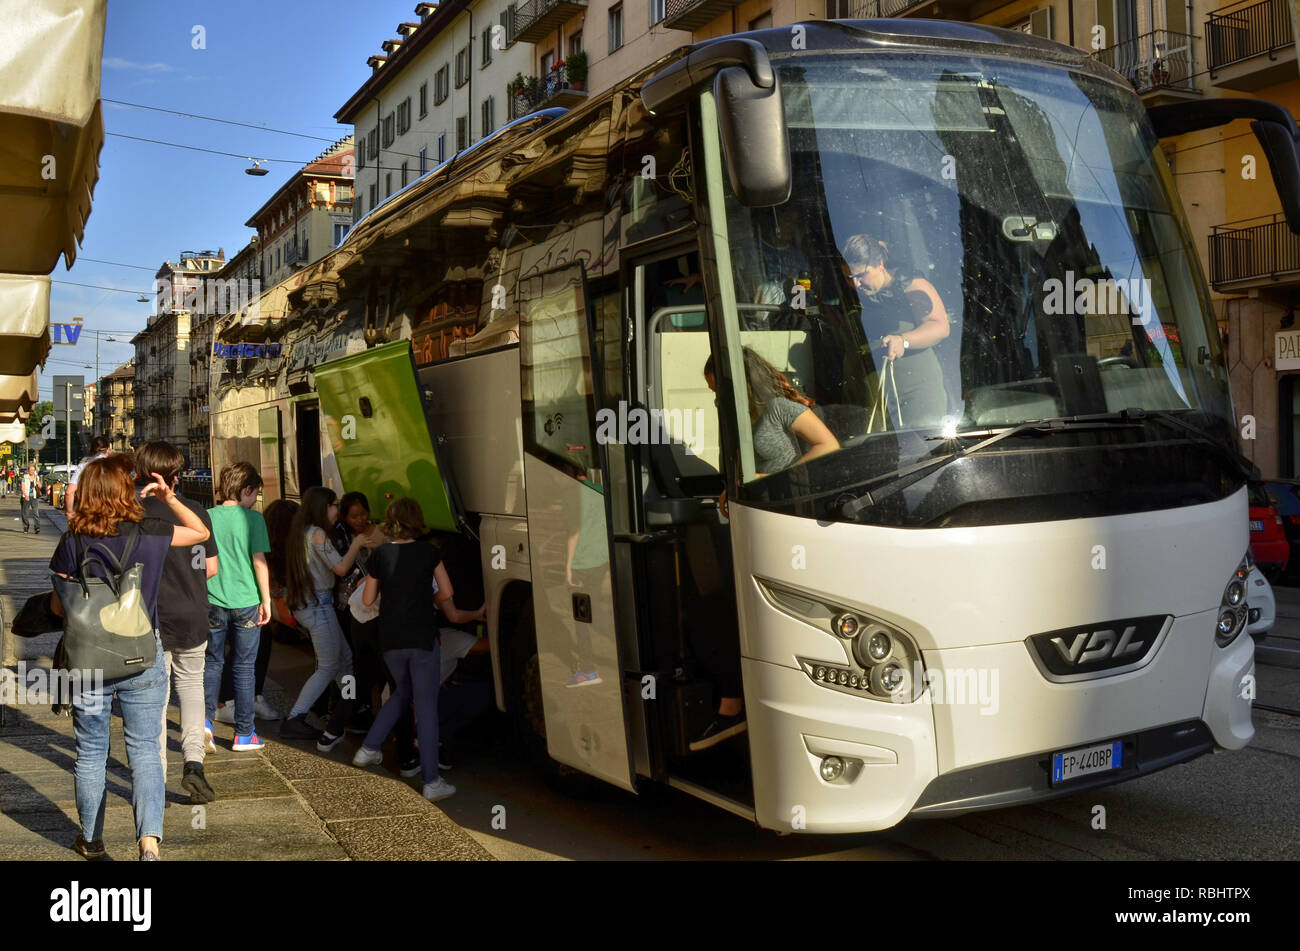 Turin, Piedmont, May 2018, Italy. Return for the school year-end outing of a junior high school pupil. - Stock Image